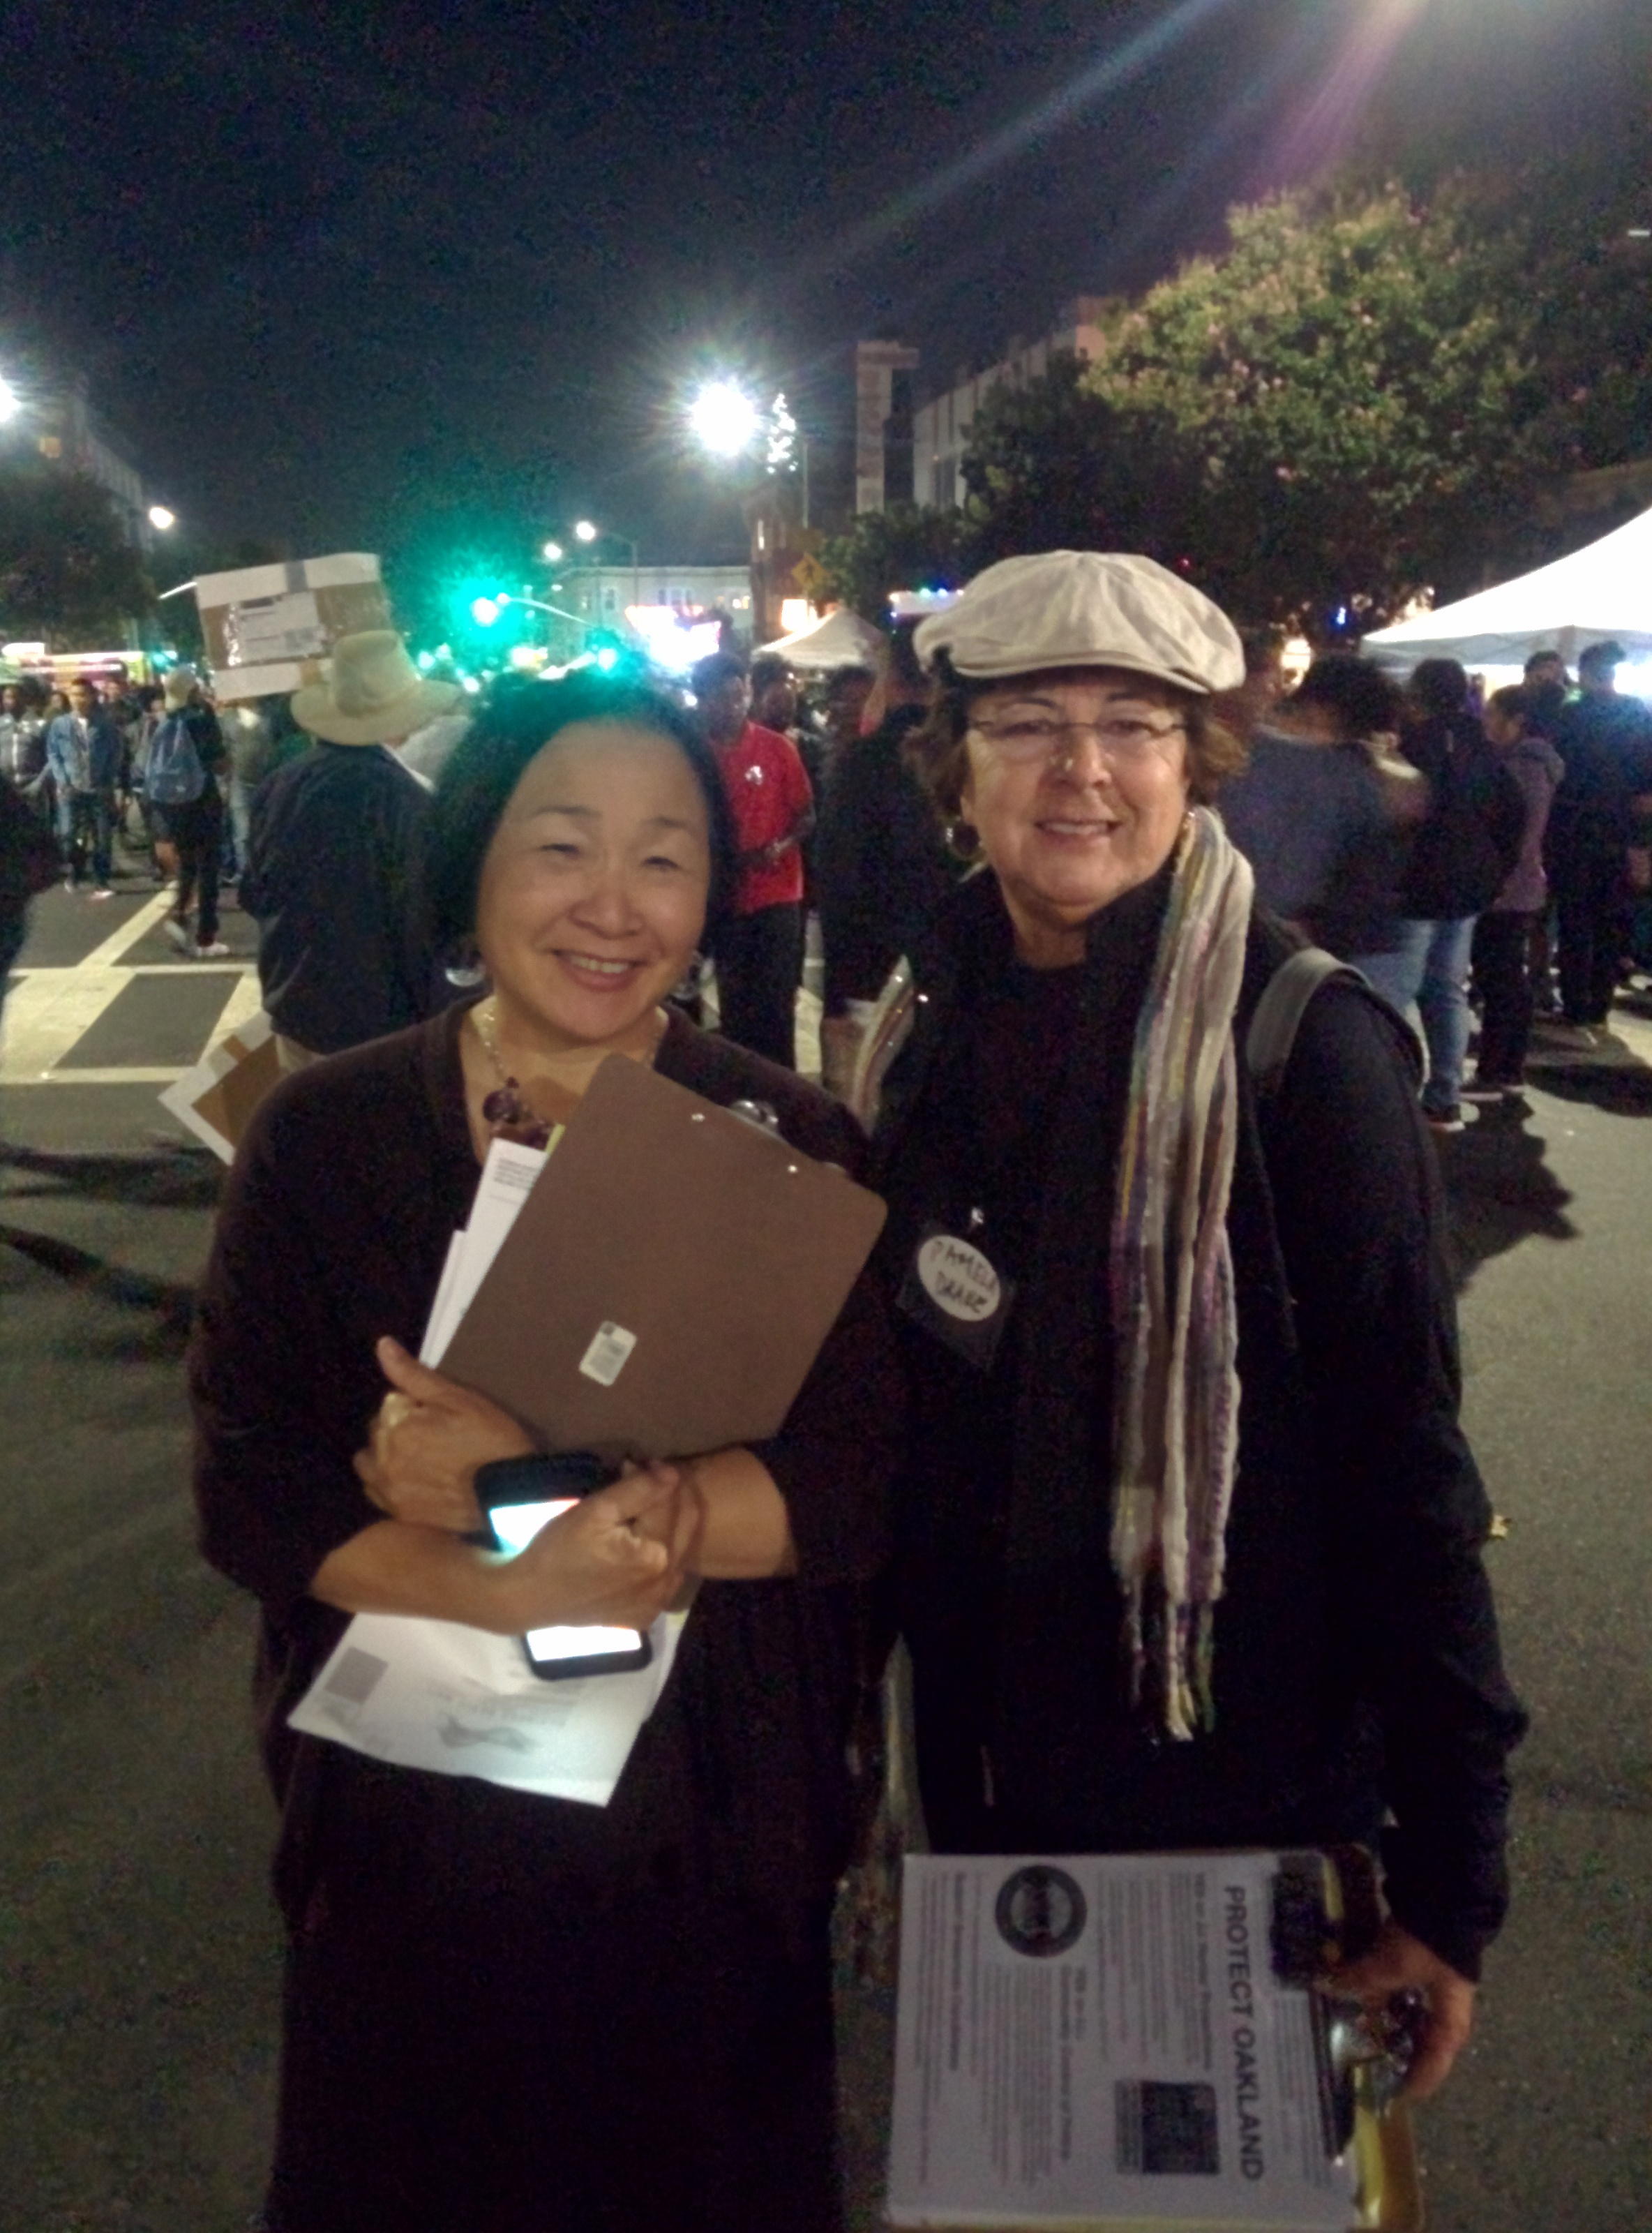 Jean Quan (left) during an Oakland First Fridays Festival, campaigning for a renter protection ordinance, had advice for a city like Reno beginning to experience its own gentrification issues. Photo by  Ruben Kimmelman